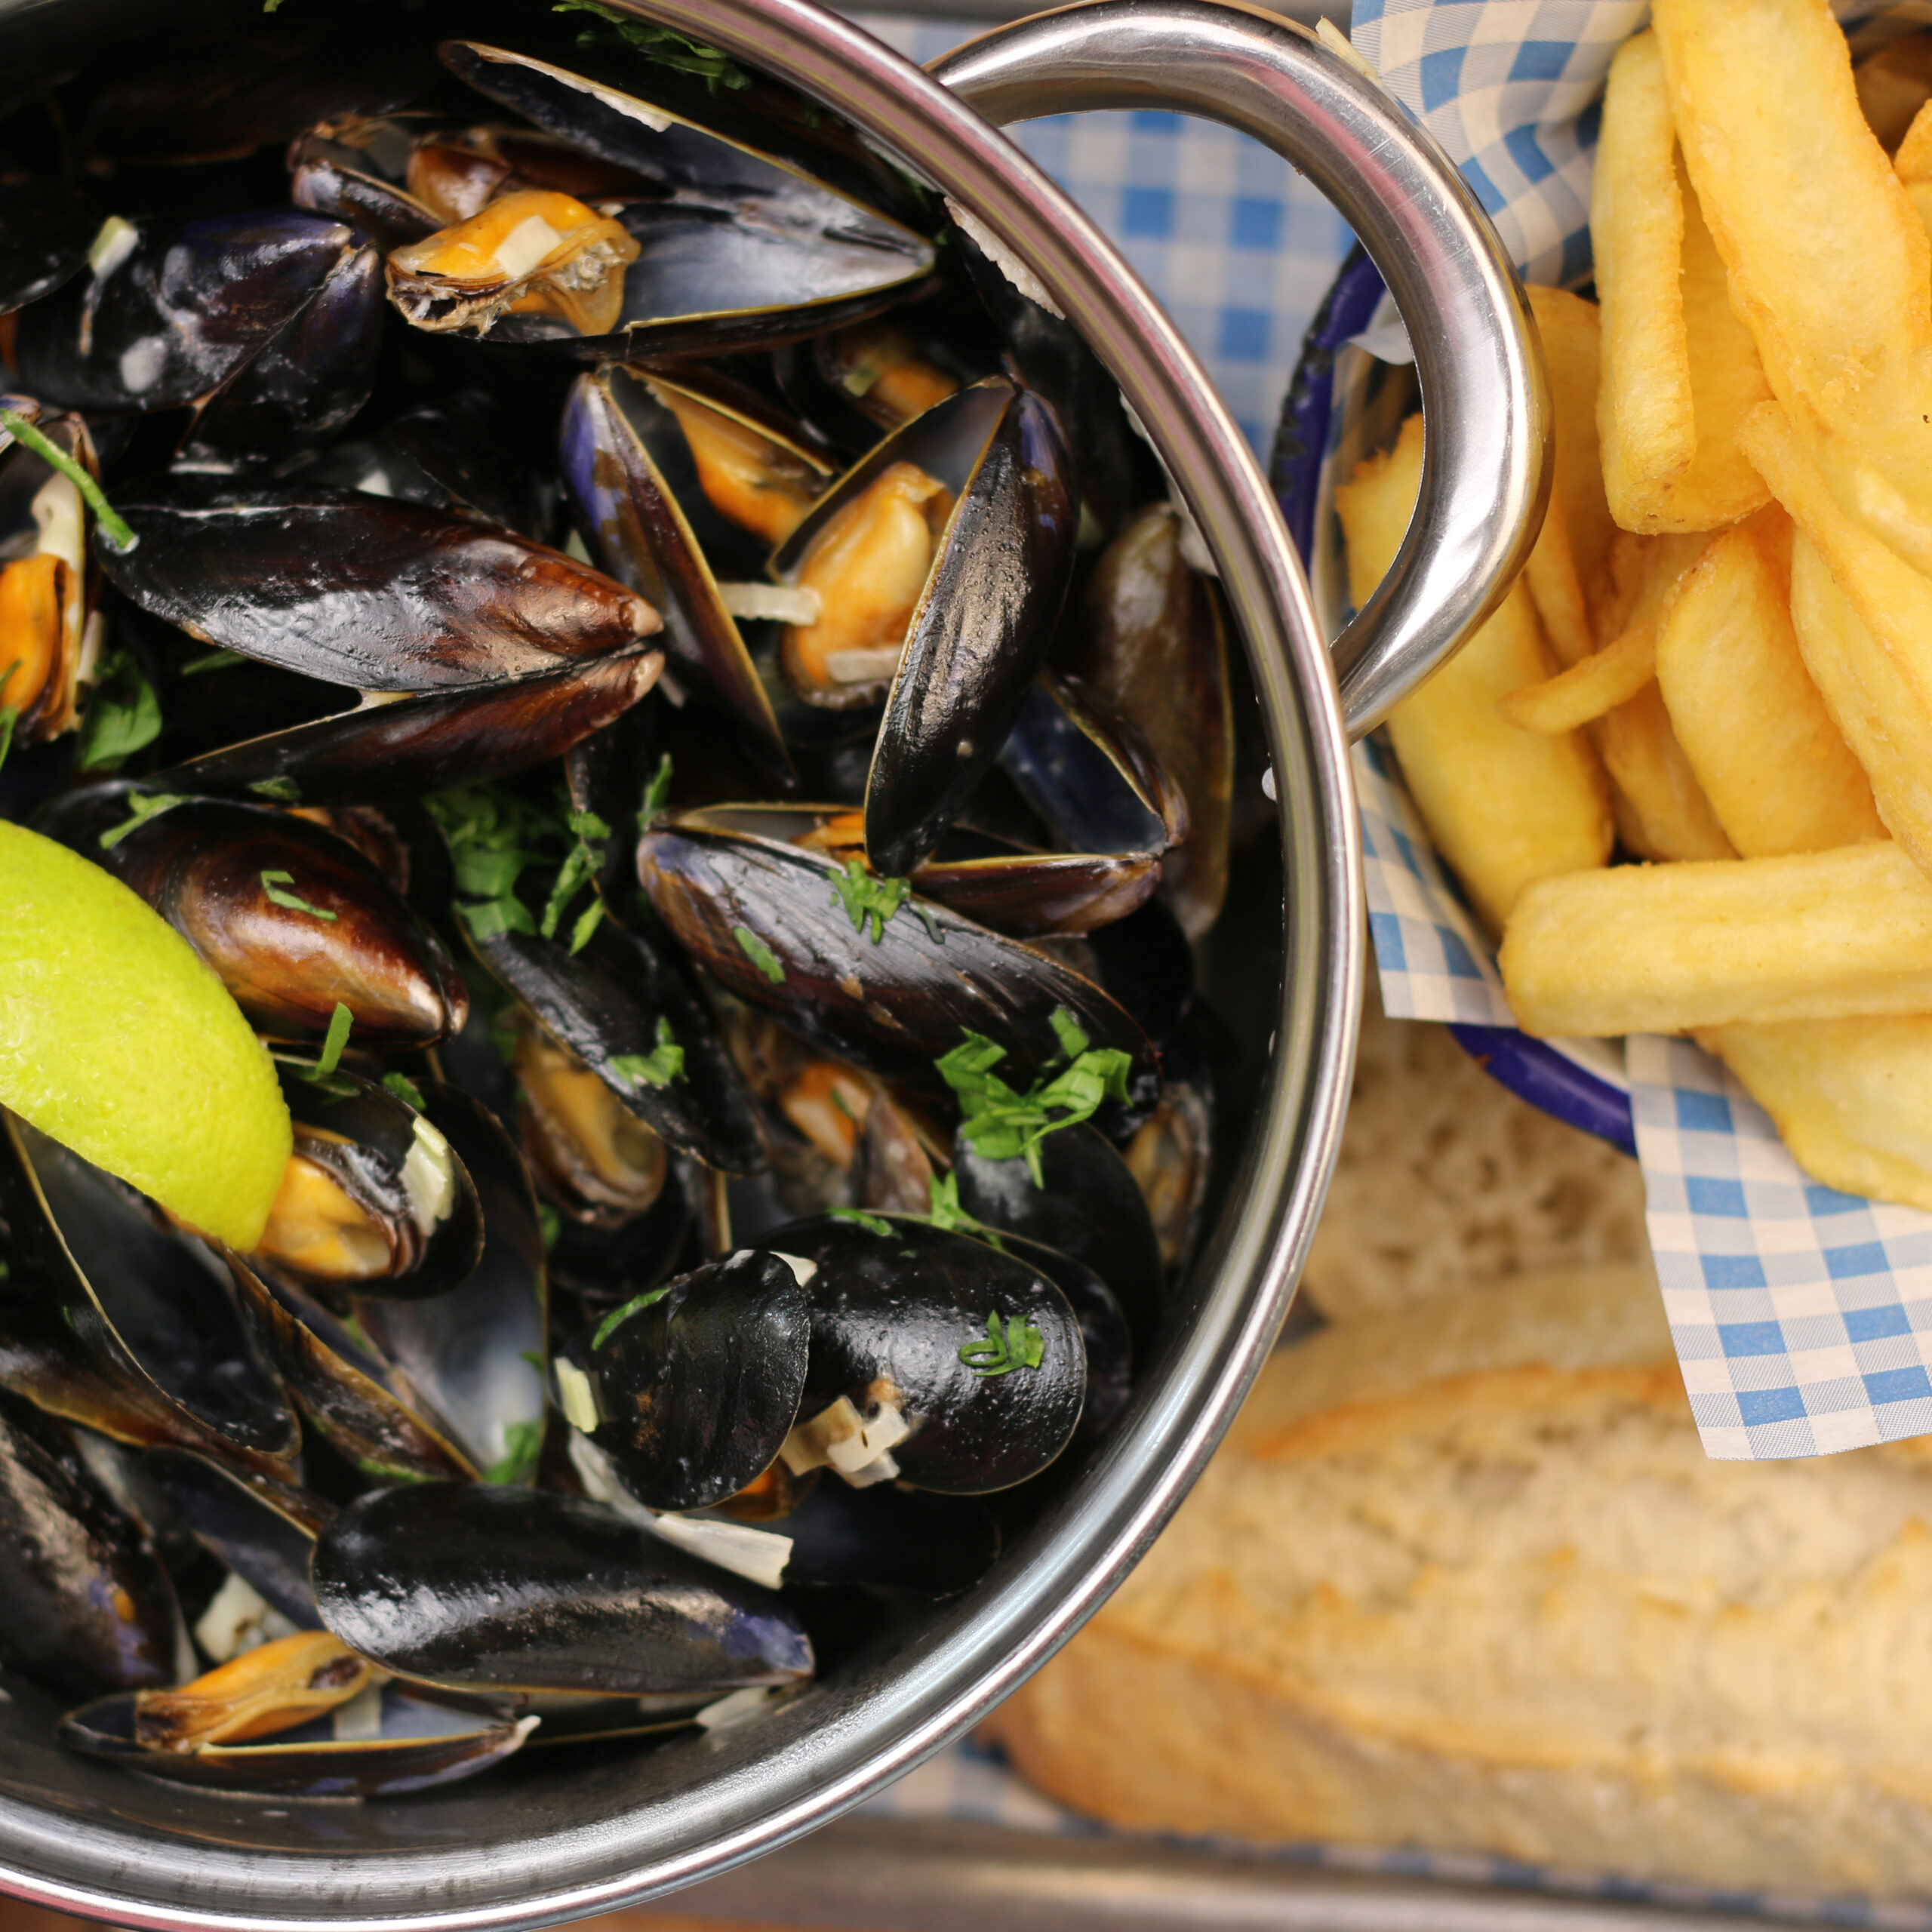 Mussels served in a bowl with a bowl of fries and crusty bread